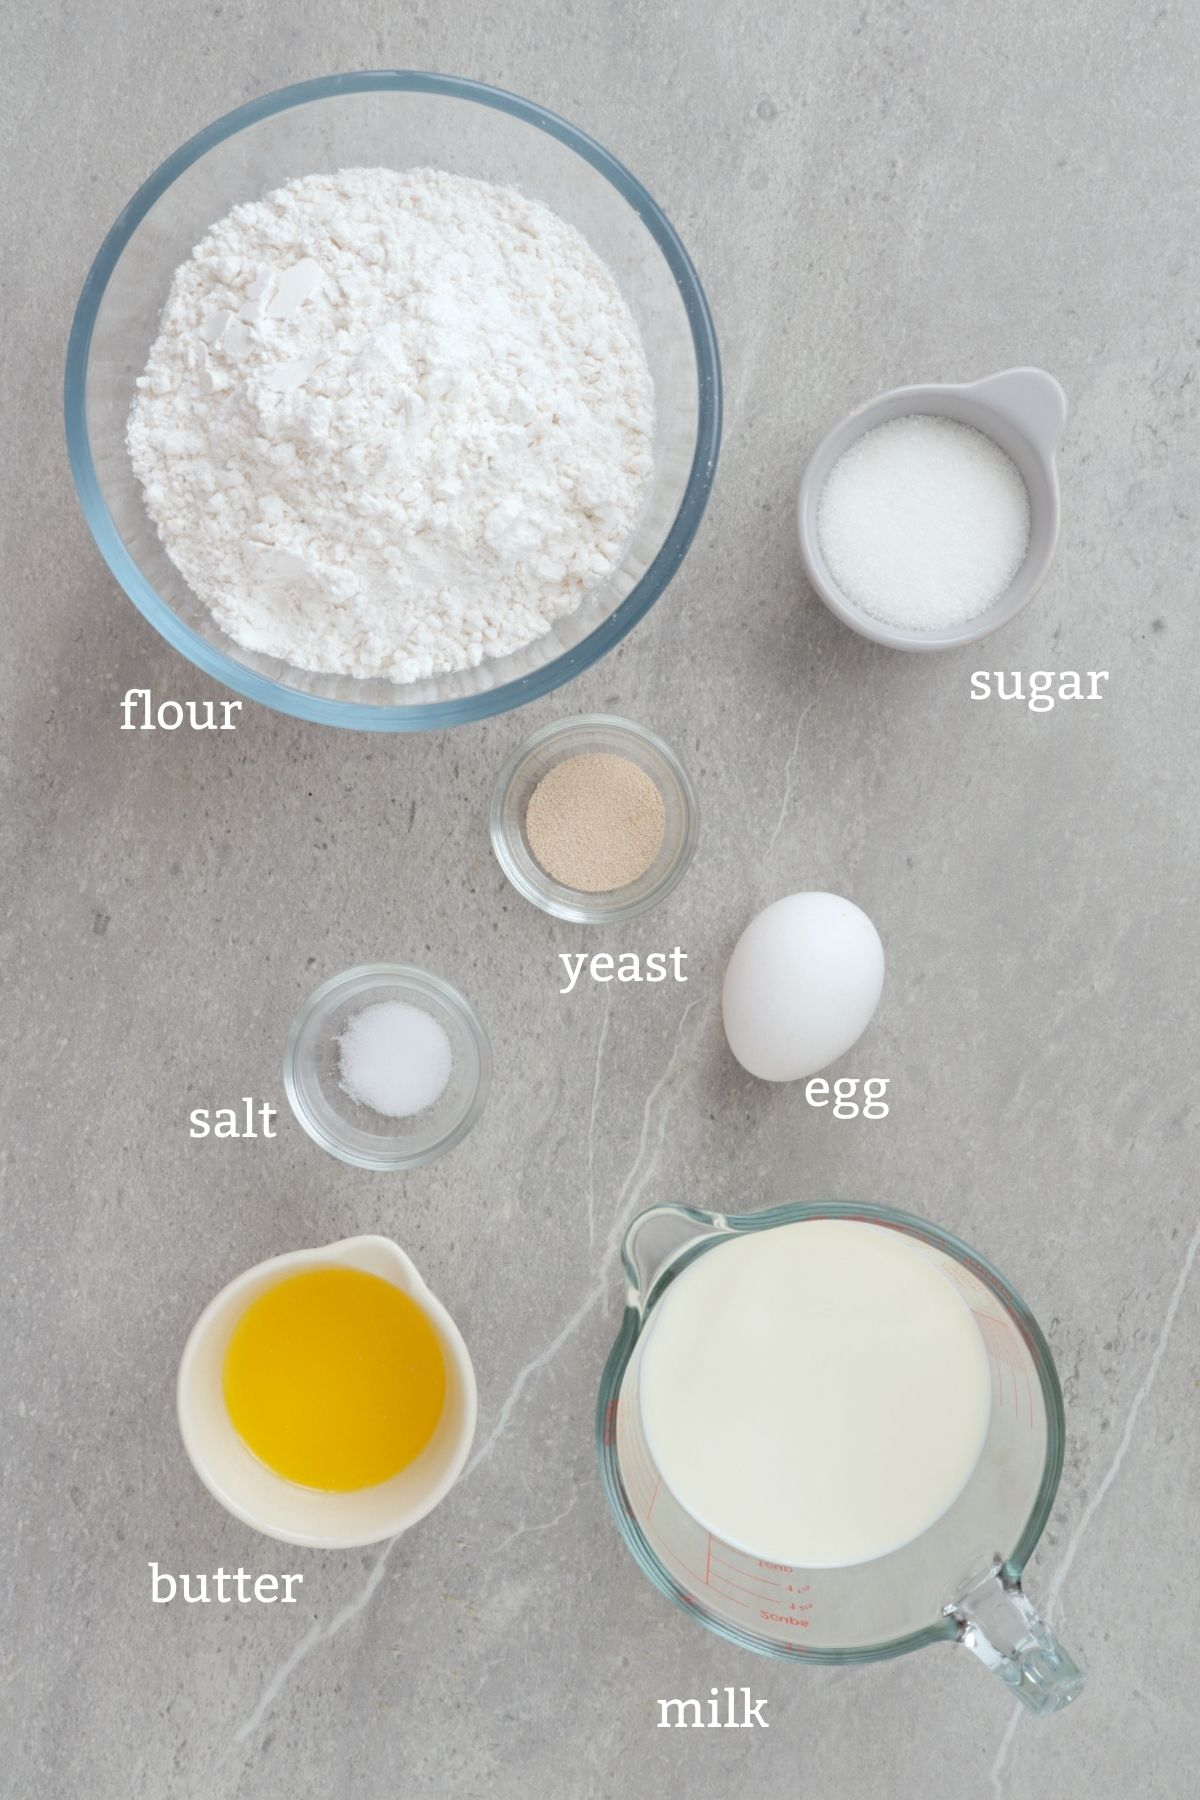 Ingredients for making Shaky or Bicho-bicho